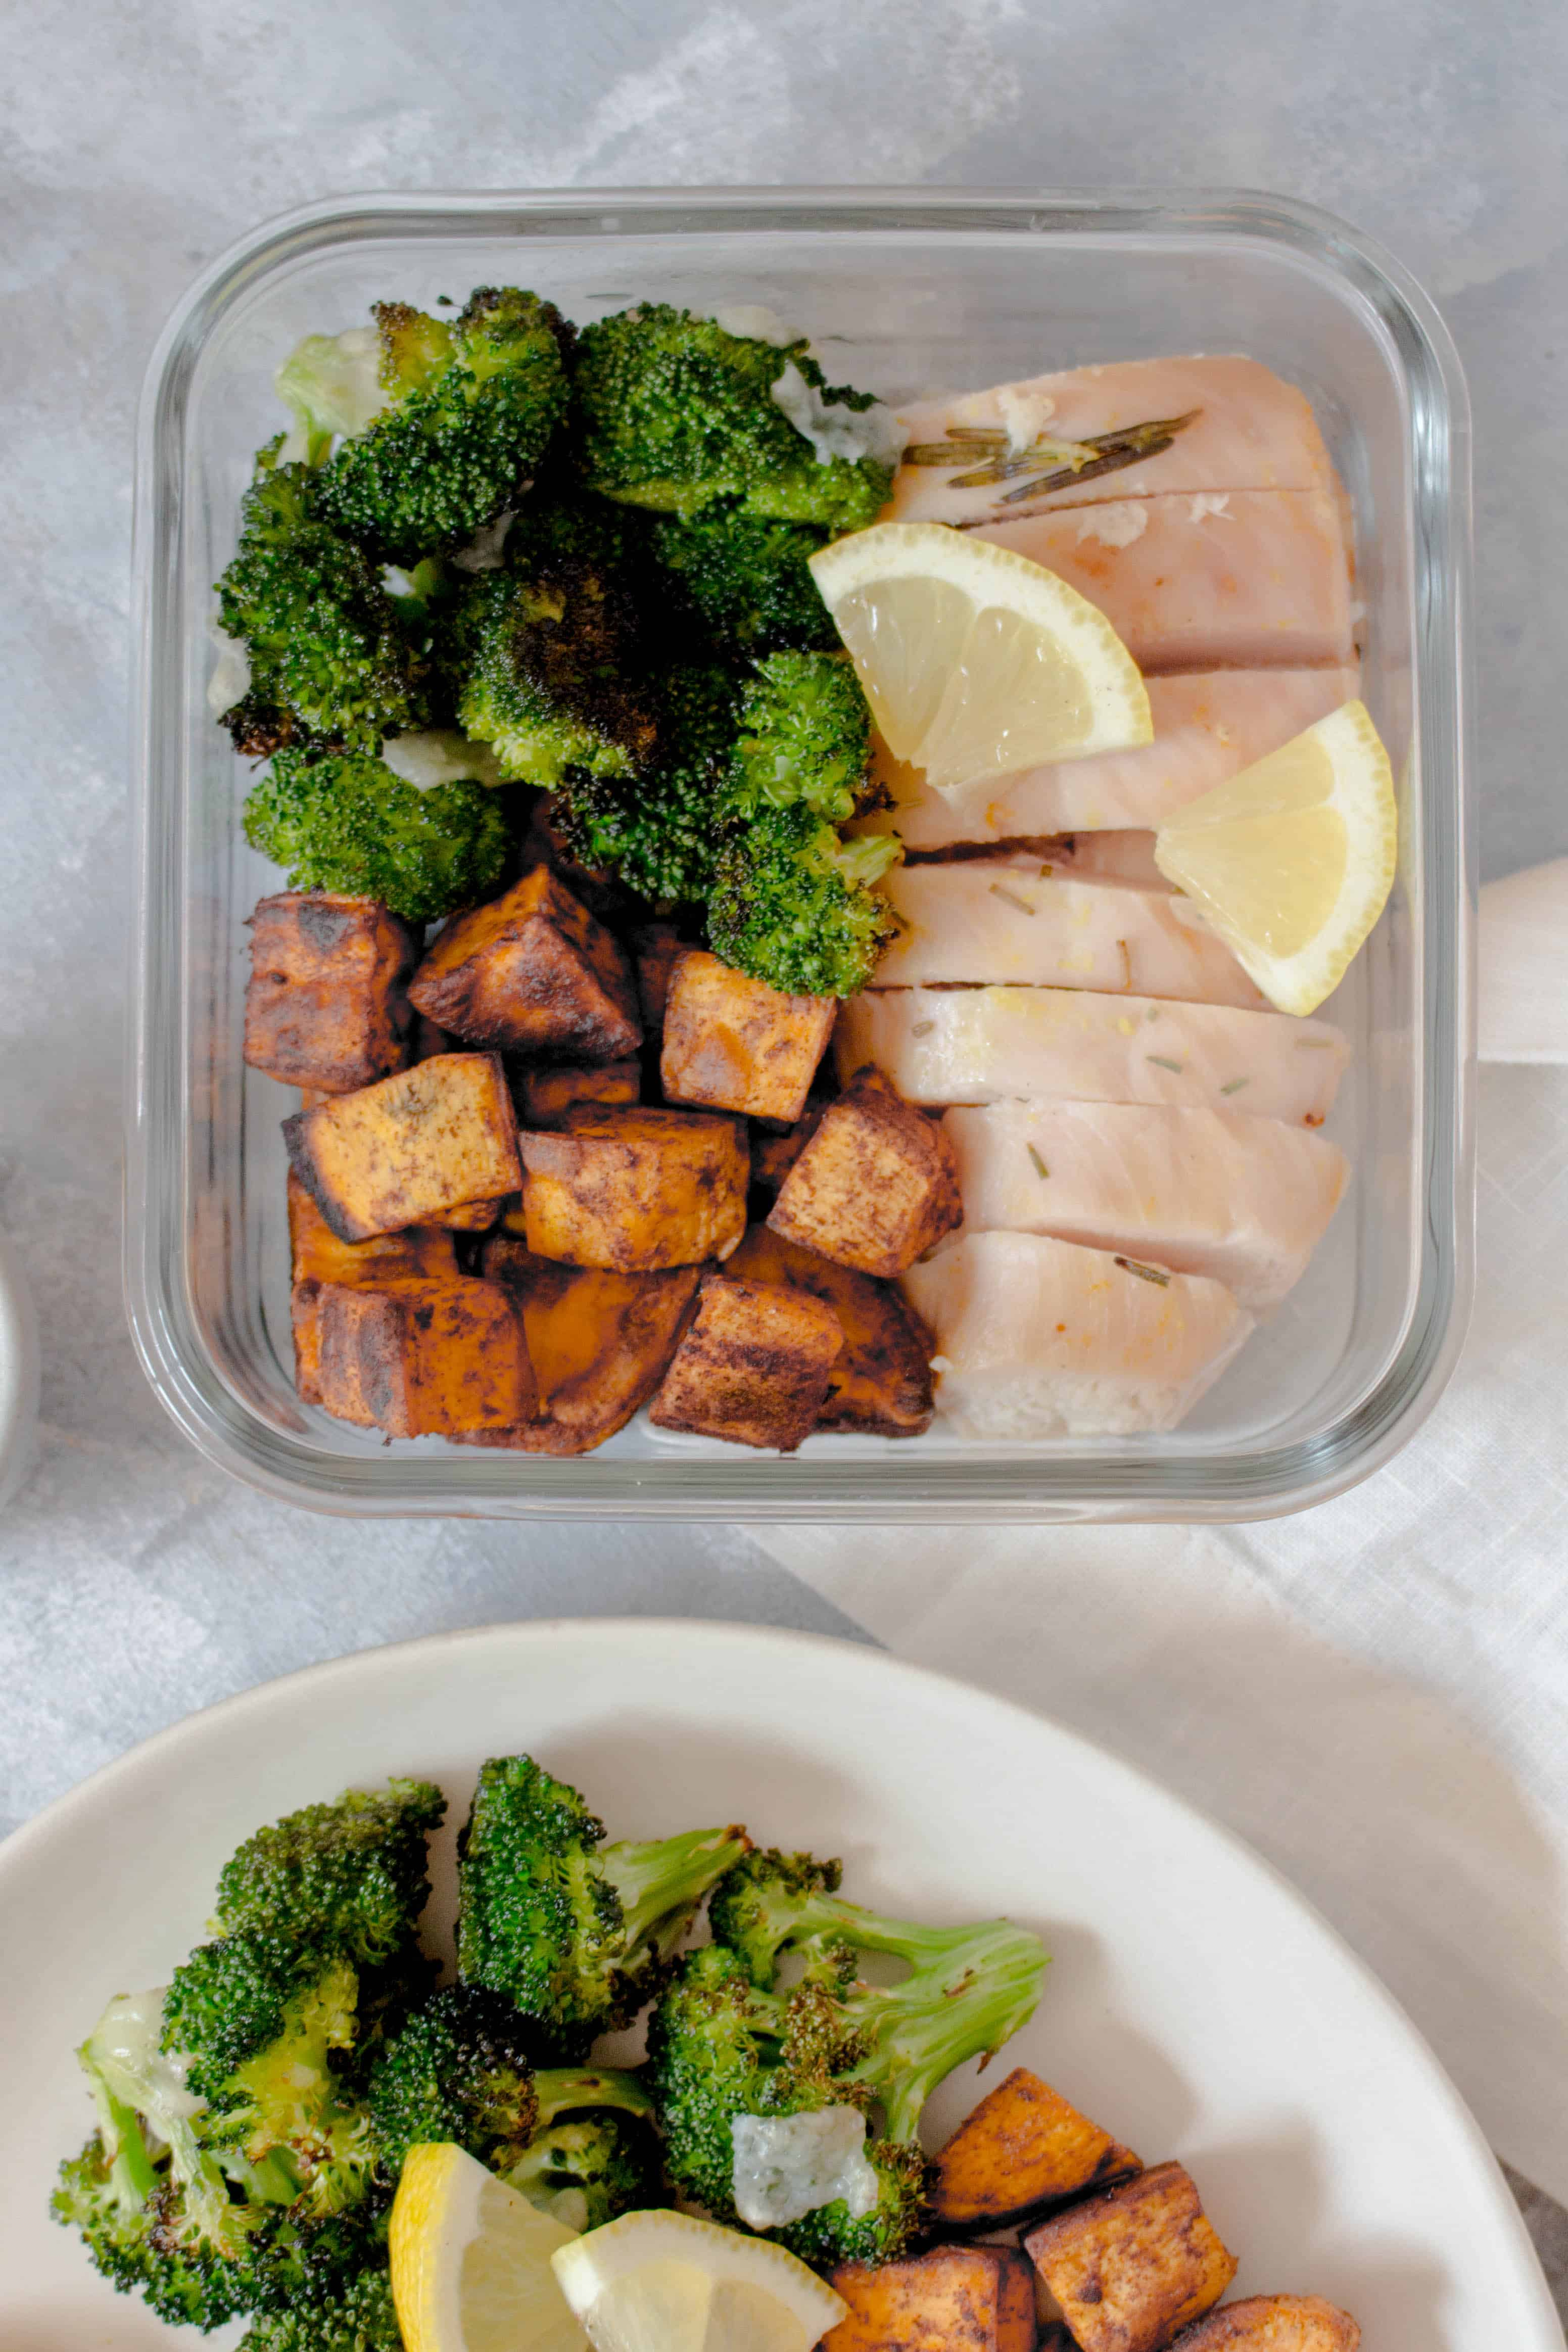 This Rosemary Citrus Chicken Meal Prep is such a refreshing dish - it is so light and the acid gives it such a fresh flavour. Made with a combination of lemon, lime, orange juice, and rosemary, you're going to look forward to lunch! Plus, when served with a side of cinnamon roasted sweet potatoes and parmesan broccoli, this meal prep will make you excited for your work day.